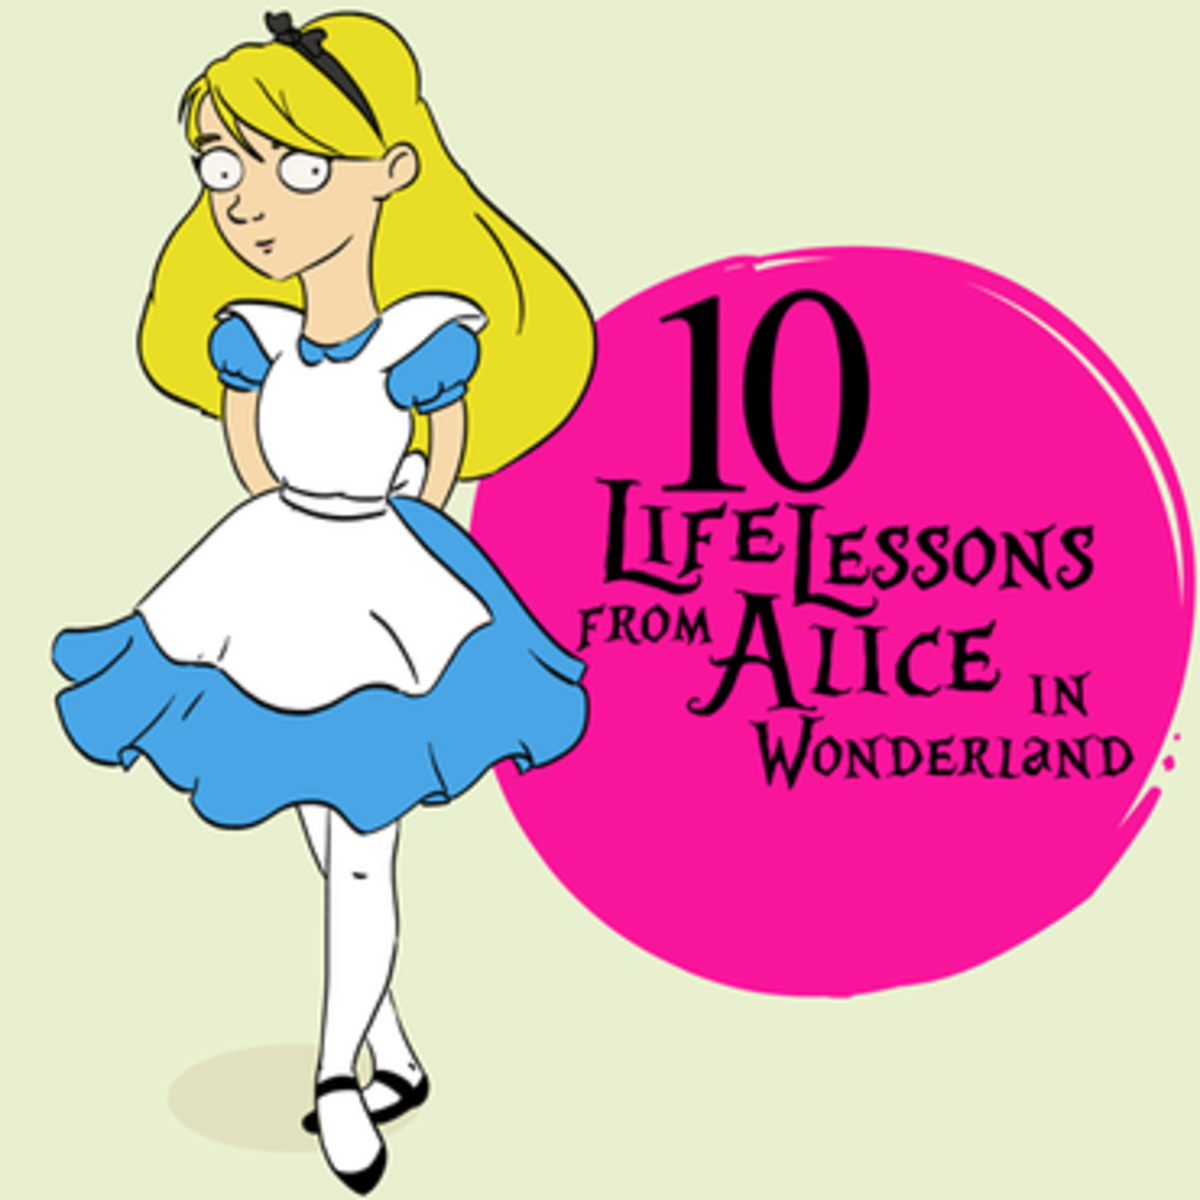 10 Life Lessons From Alice in Wonderland